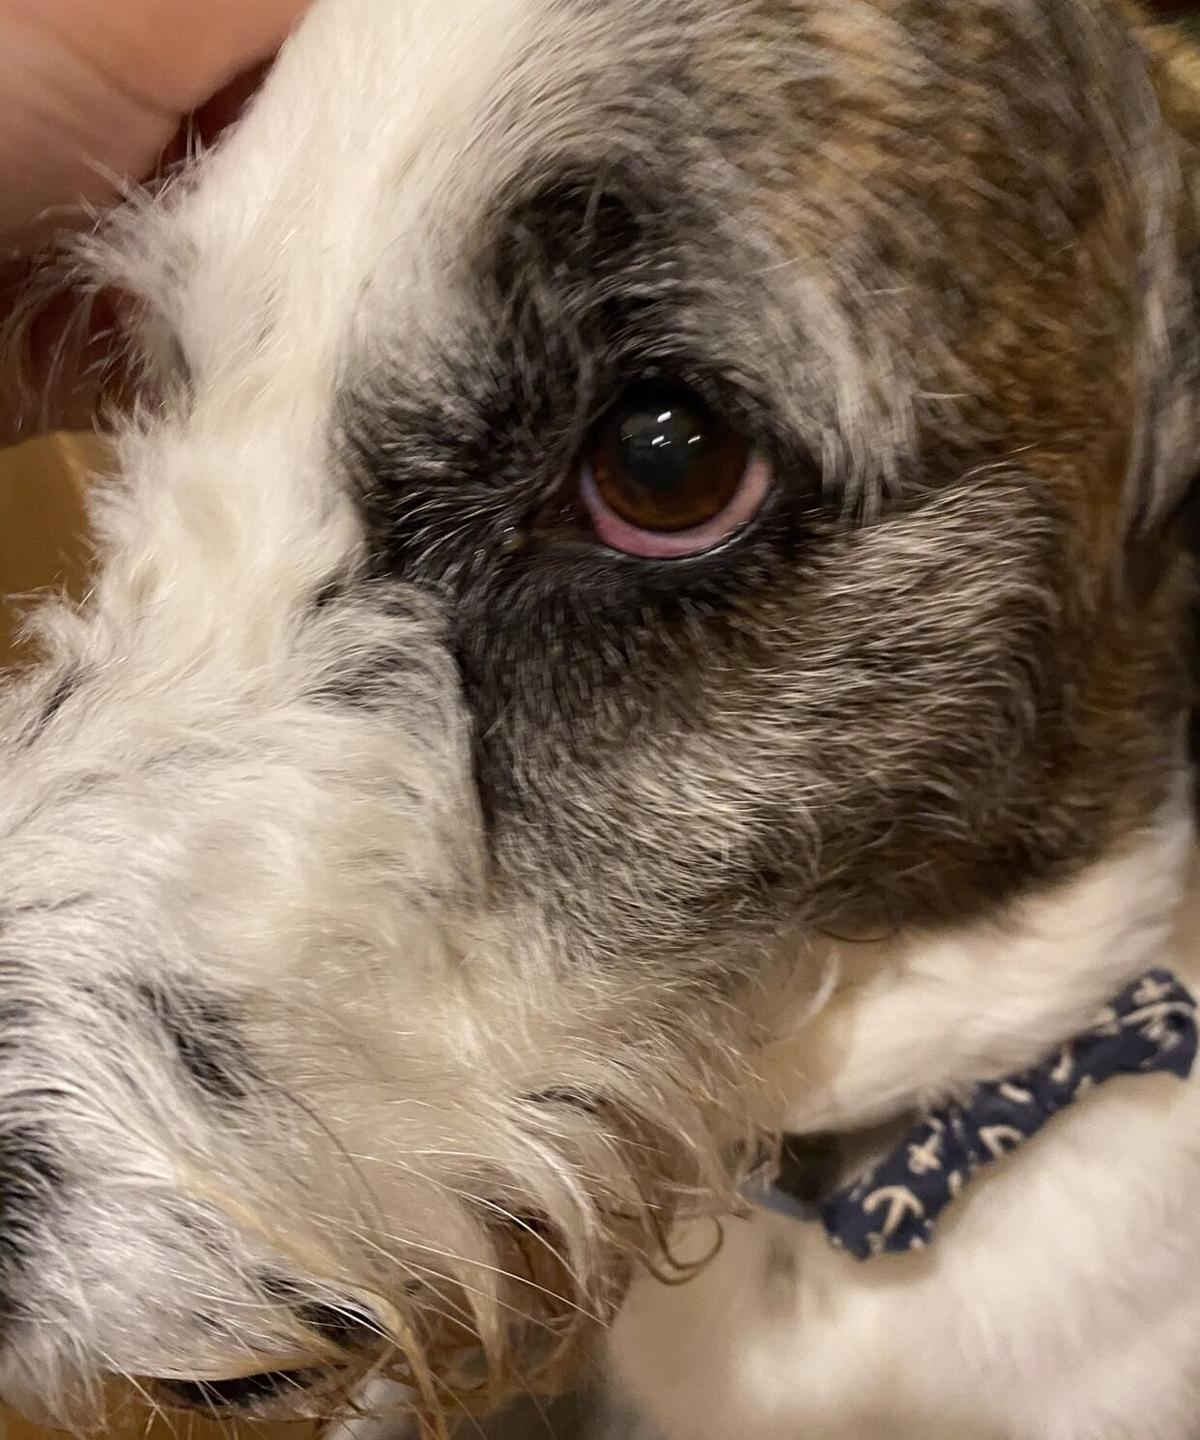 Burglar steals necklace with grandma's ashes, shaves dog's eyebrow